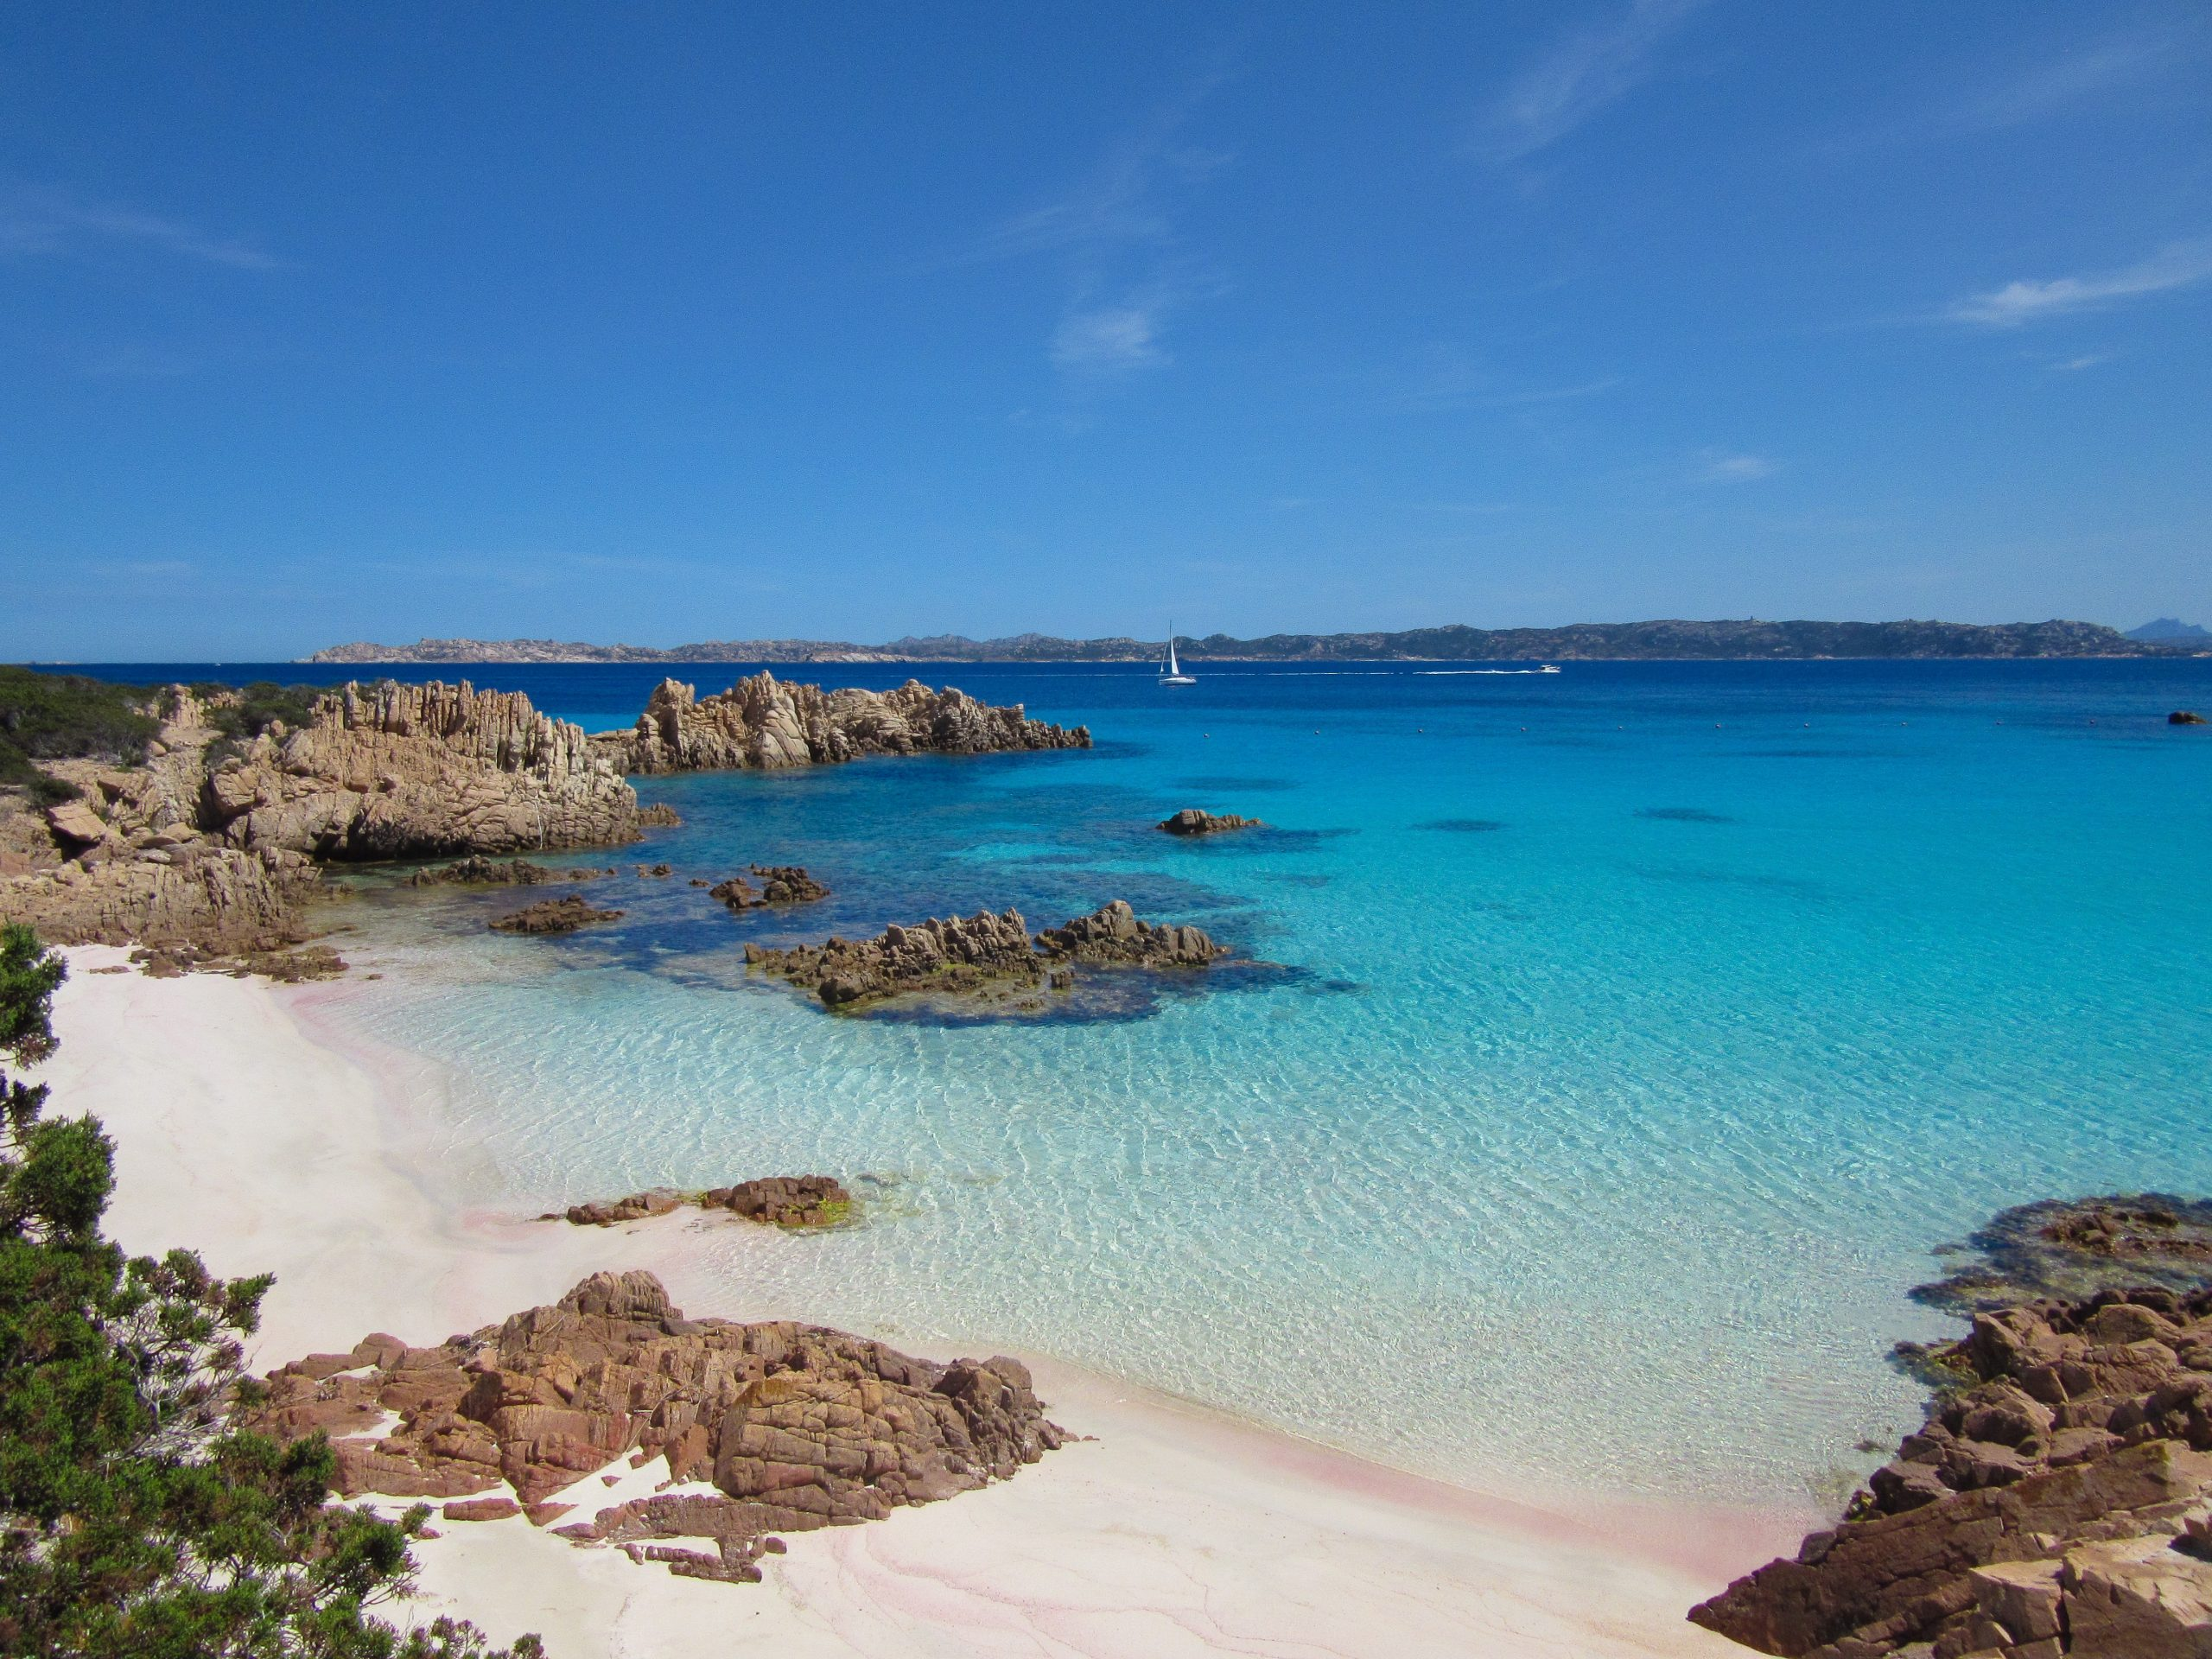 Spiaggia,Rosa,In,Sardegna,,One,Of,The,Beautiful,Beaches,In